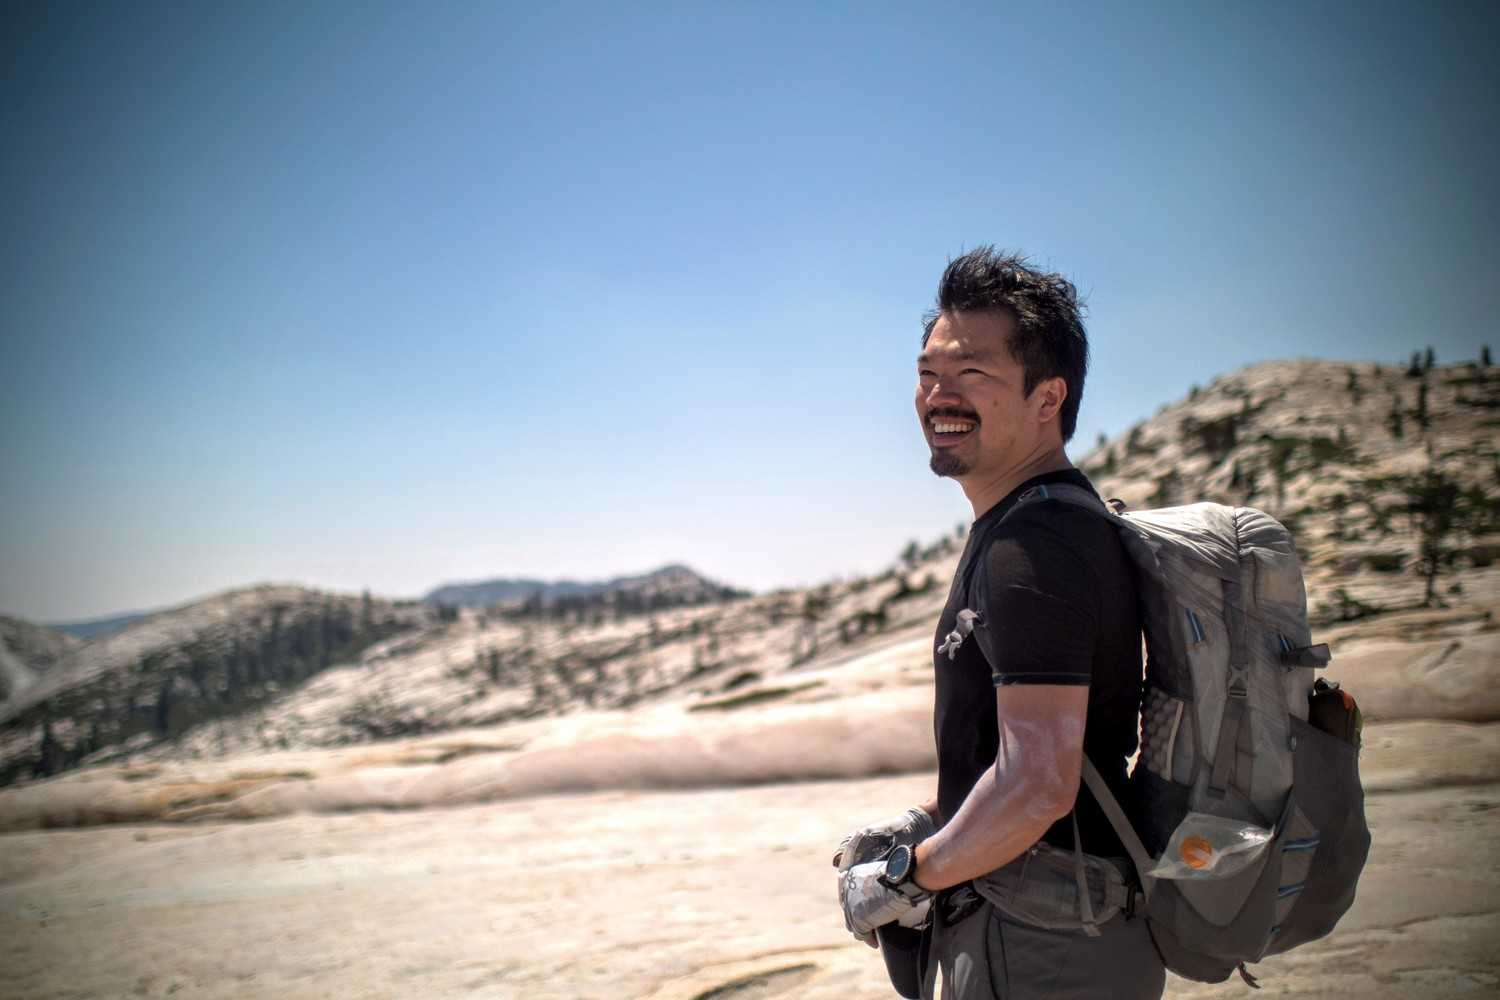 The author of this story, Duncan Cheung, has hiked over 15,000 miles in the Yosemite area and trained 150 students on guided trips in the Northern Sierra.   Photo courtesy Duncan Cheung.